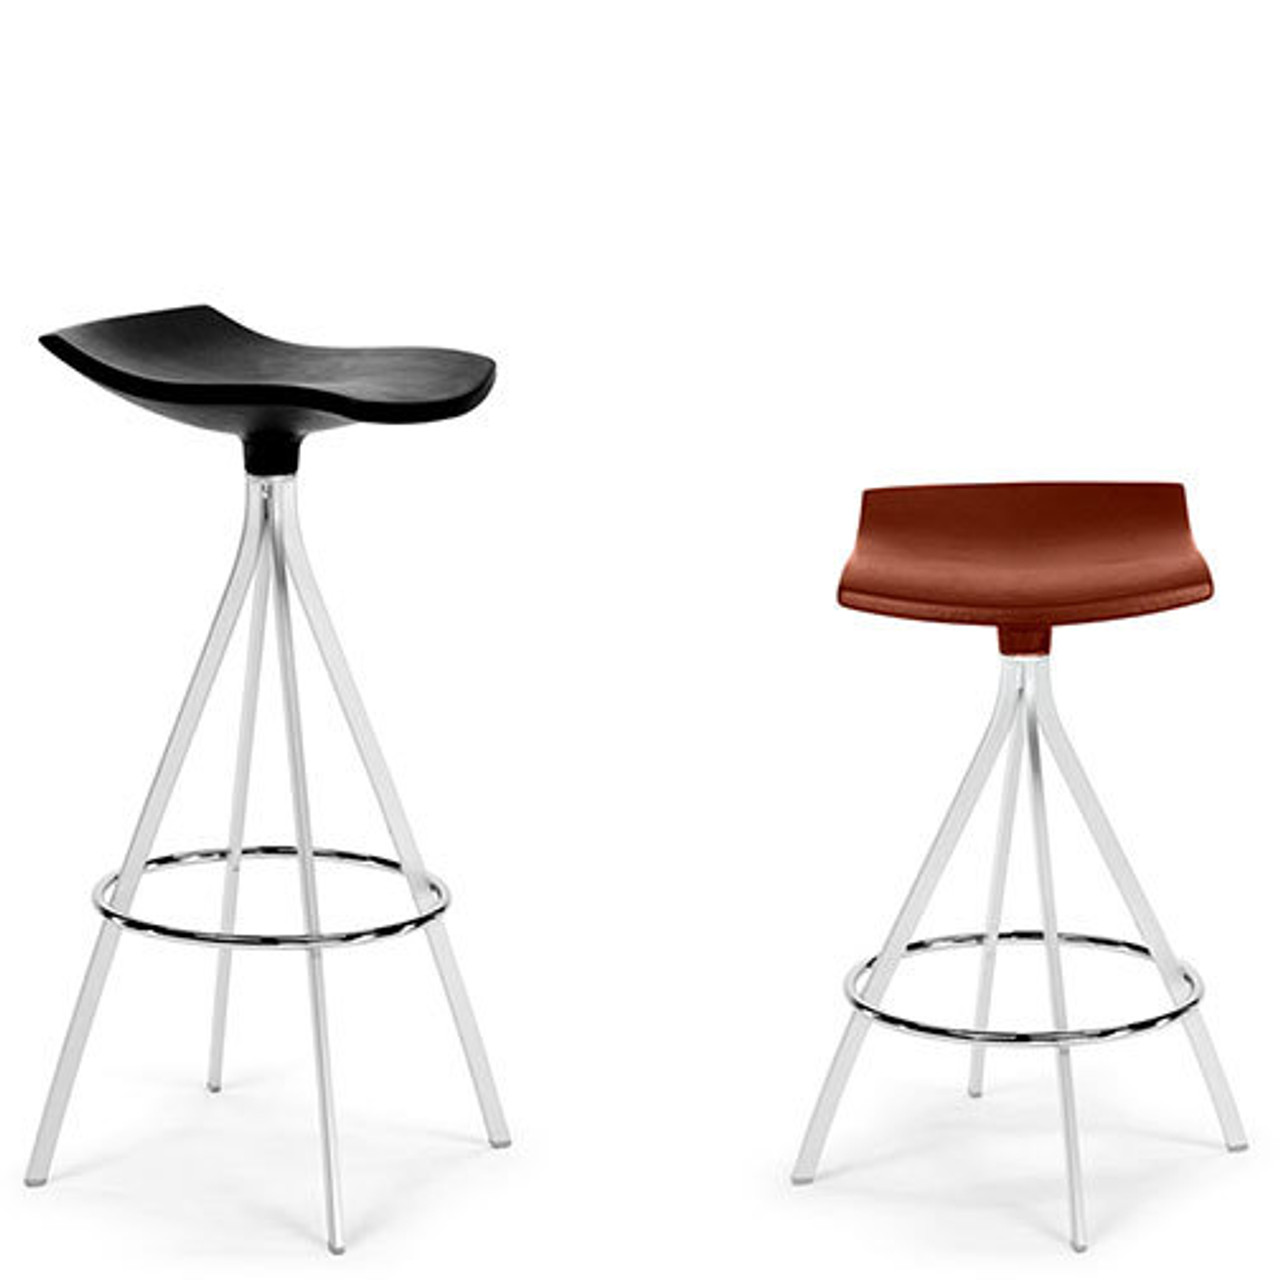 Magnuson Ginlet Counter and Bar Stools